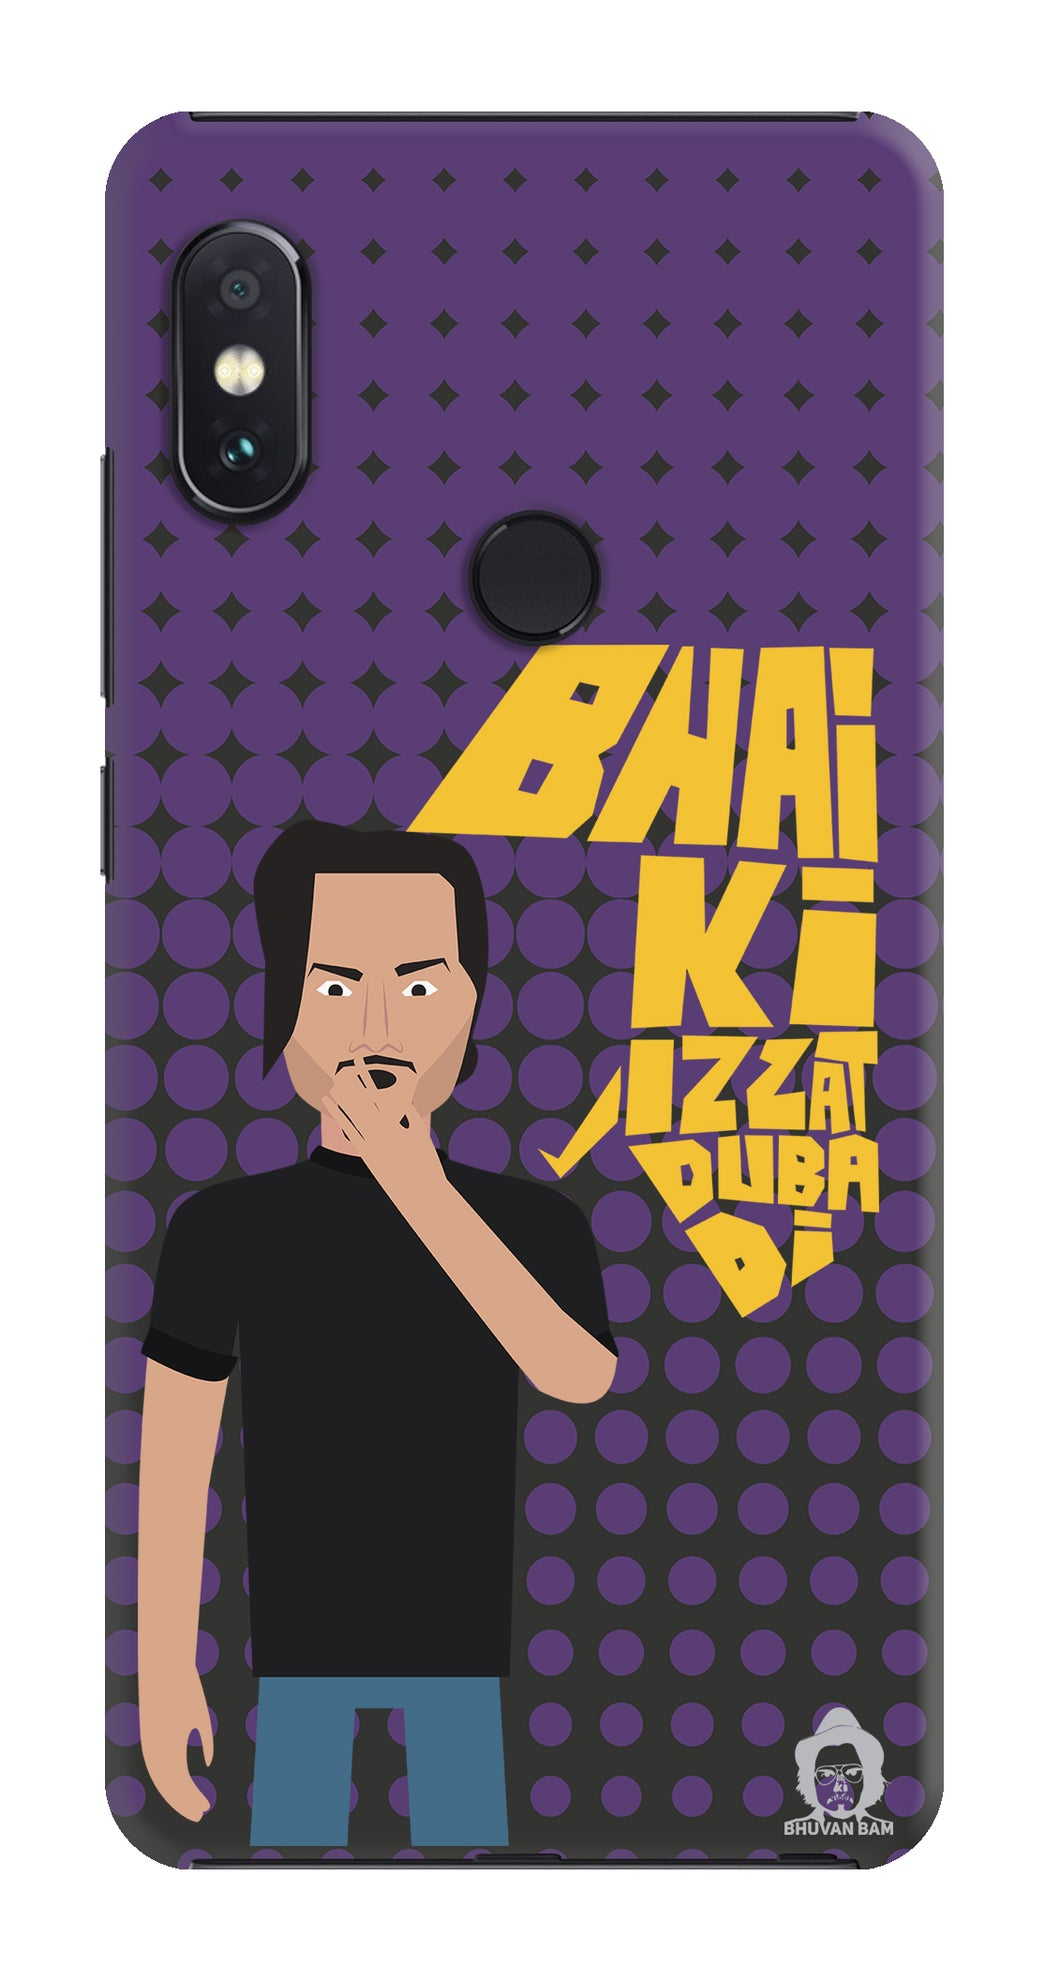 Bancho Edition for Xiaomi Redmi Note 5 Pro